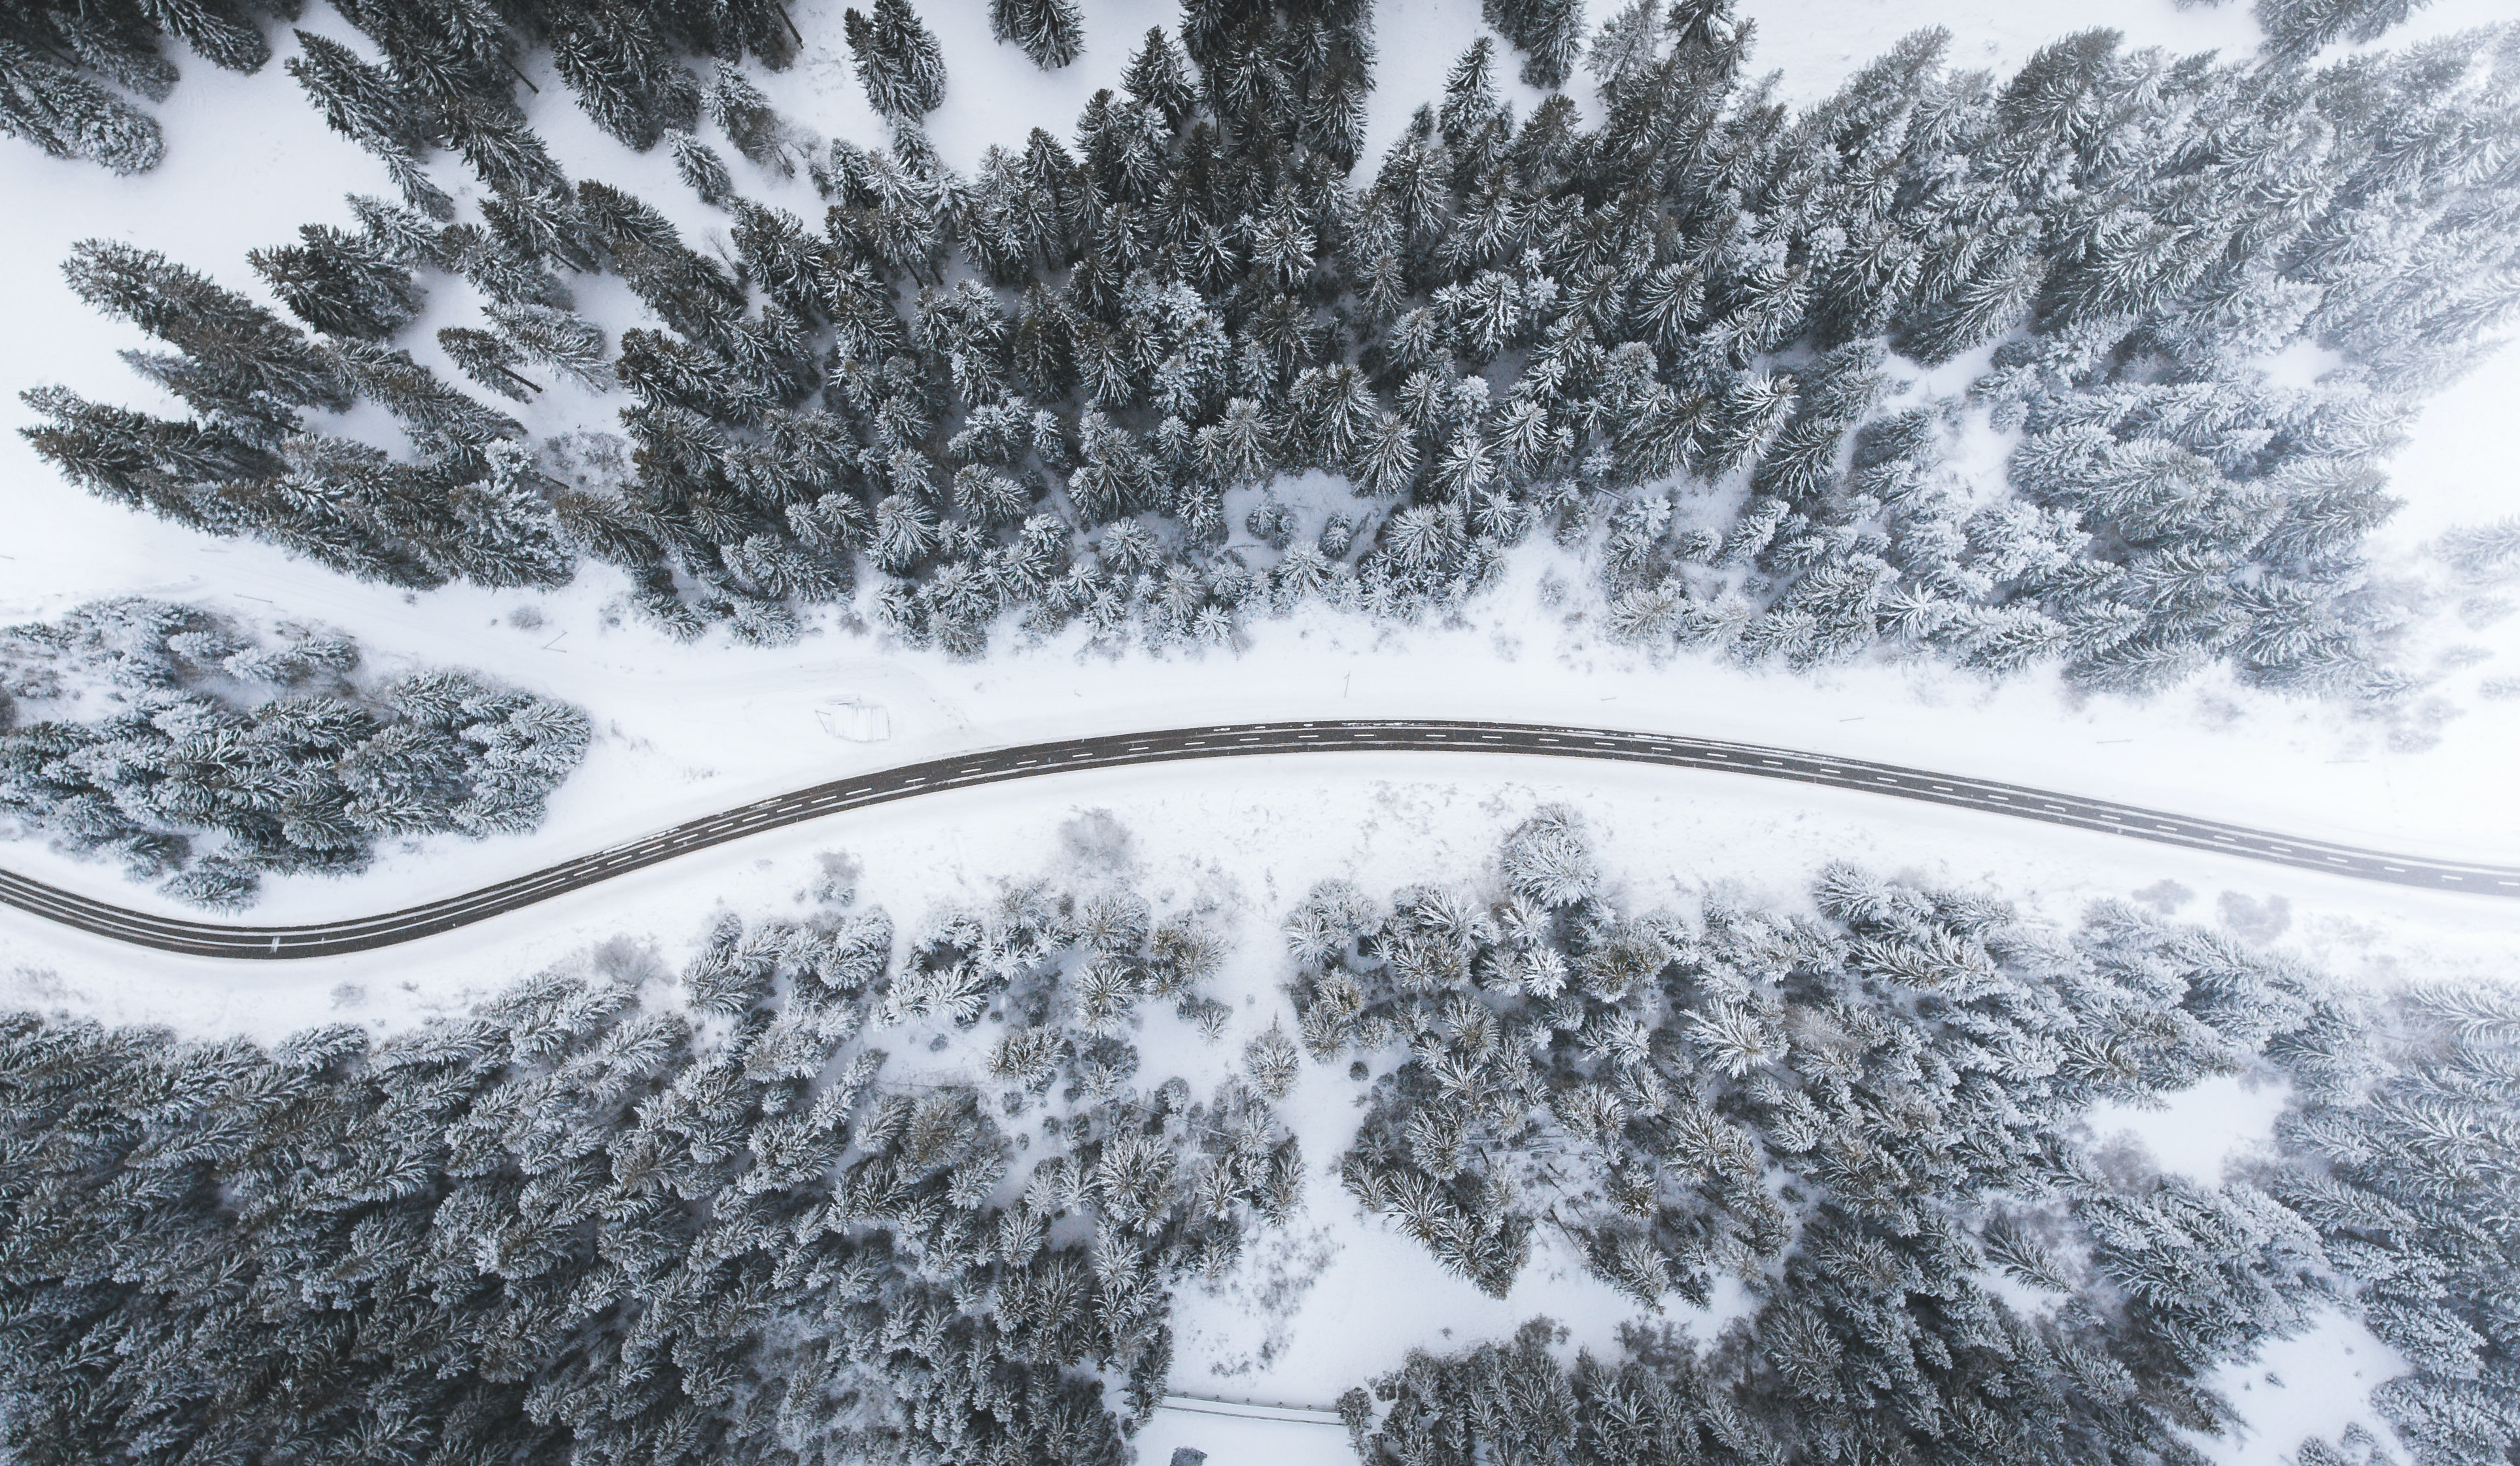 A drone shot of an empty road with stretches of snowy trees on its sides